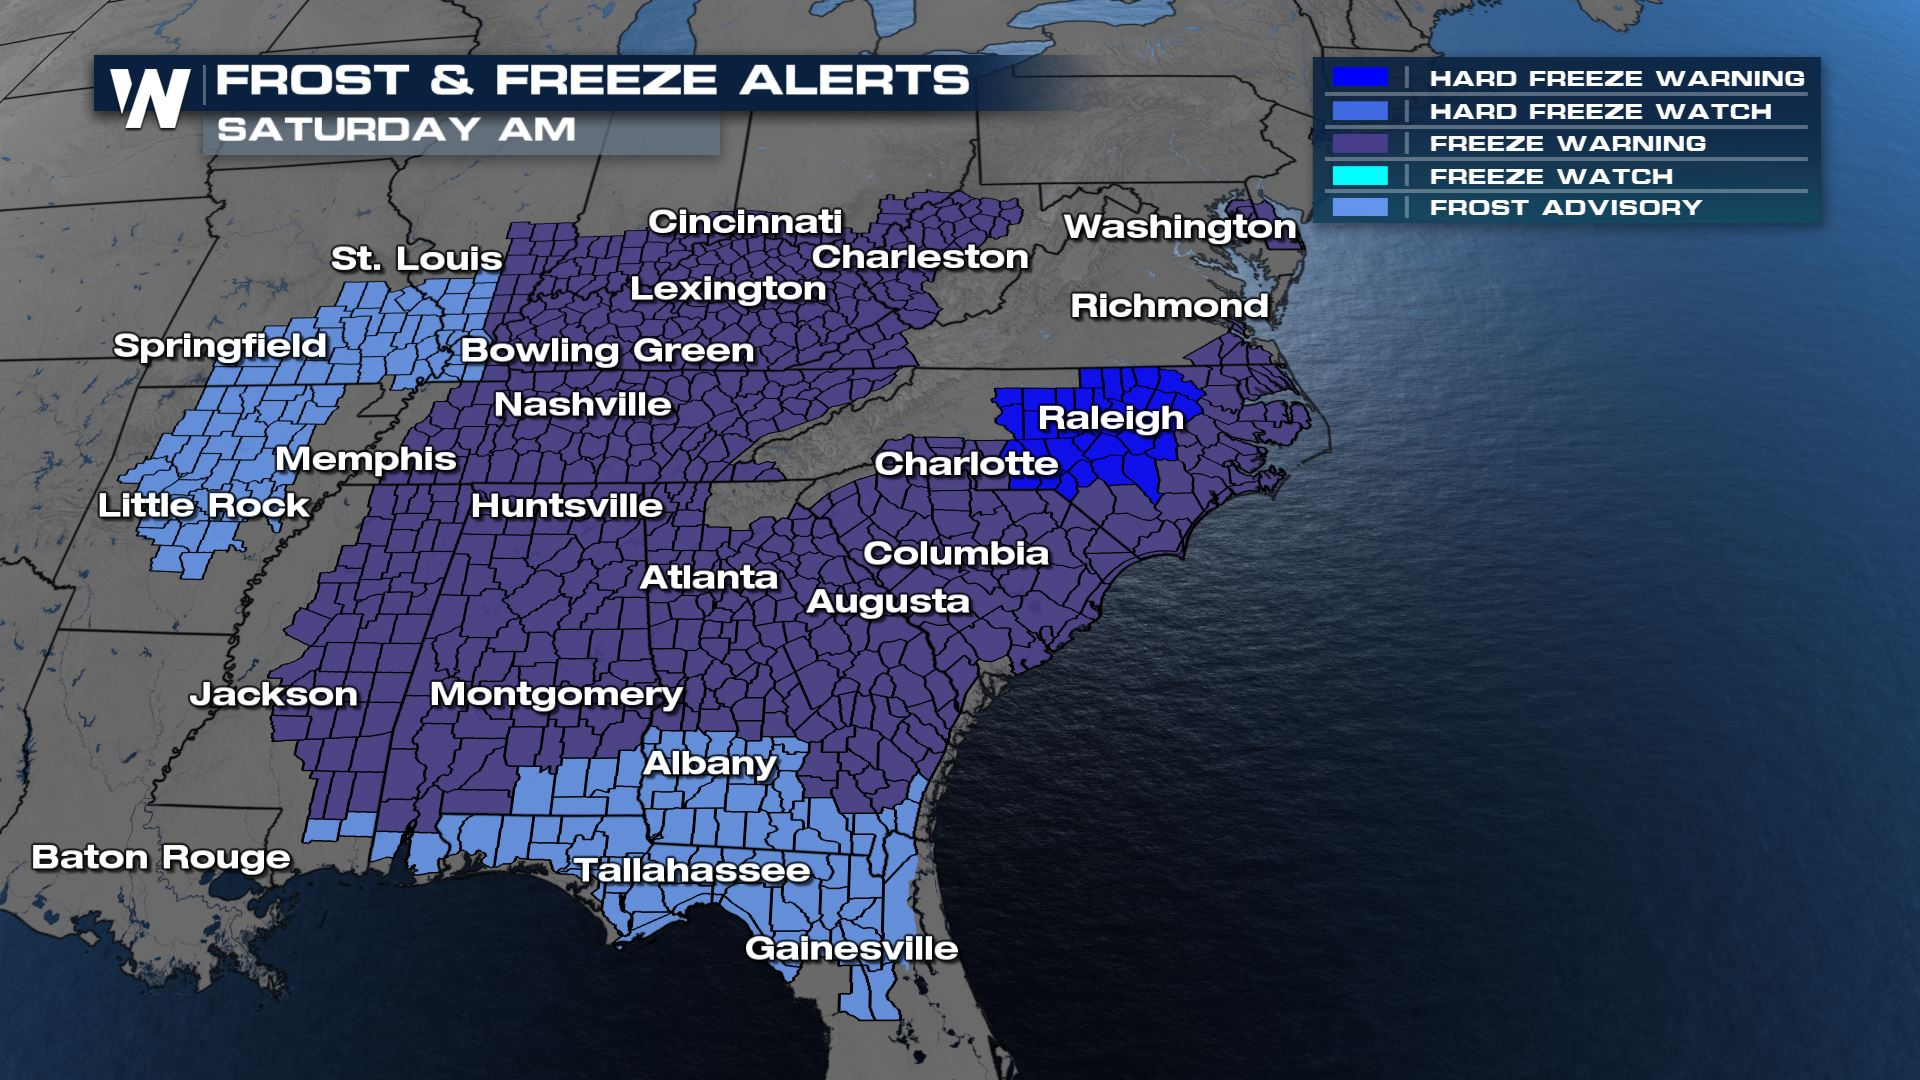 55 Million People Under Frost/Freeze Alerts